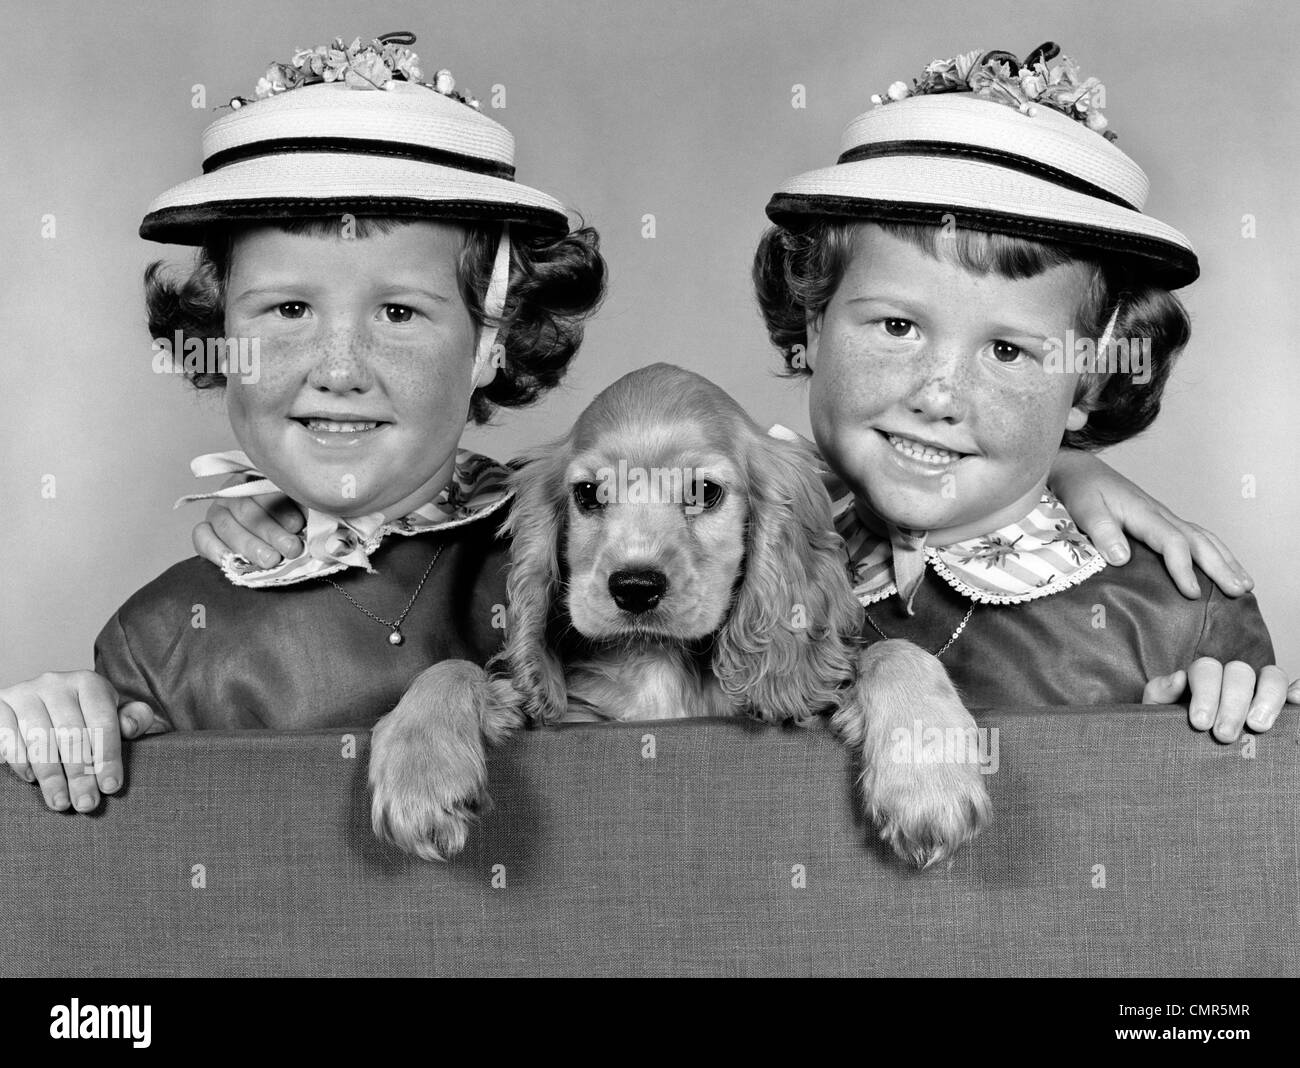 1950s 1960s TWIN GIRLS WEARING WHITE STRAW HATS SEPARATED BY A COCKER SPANIEL PUPPY LOOKING OVER A STUDIO FENCE - Stock Image